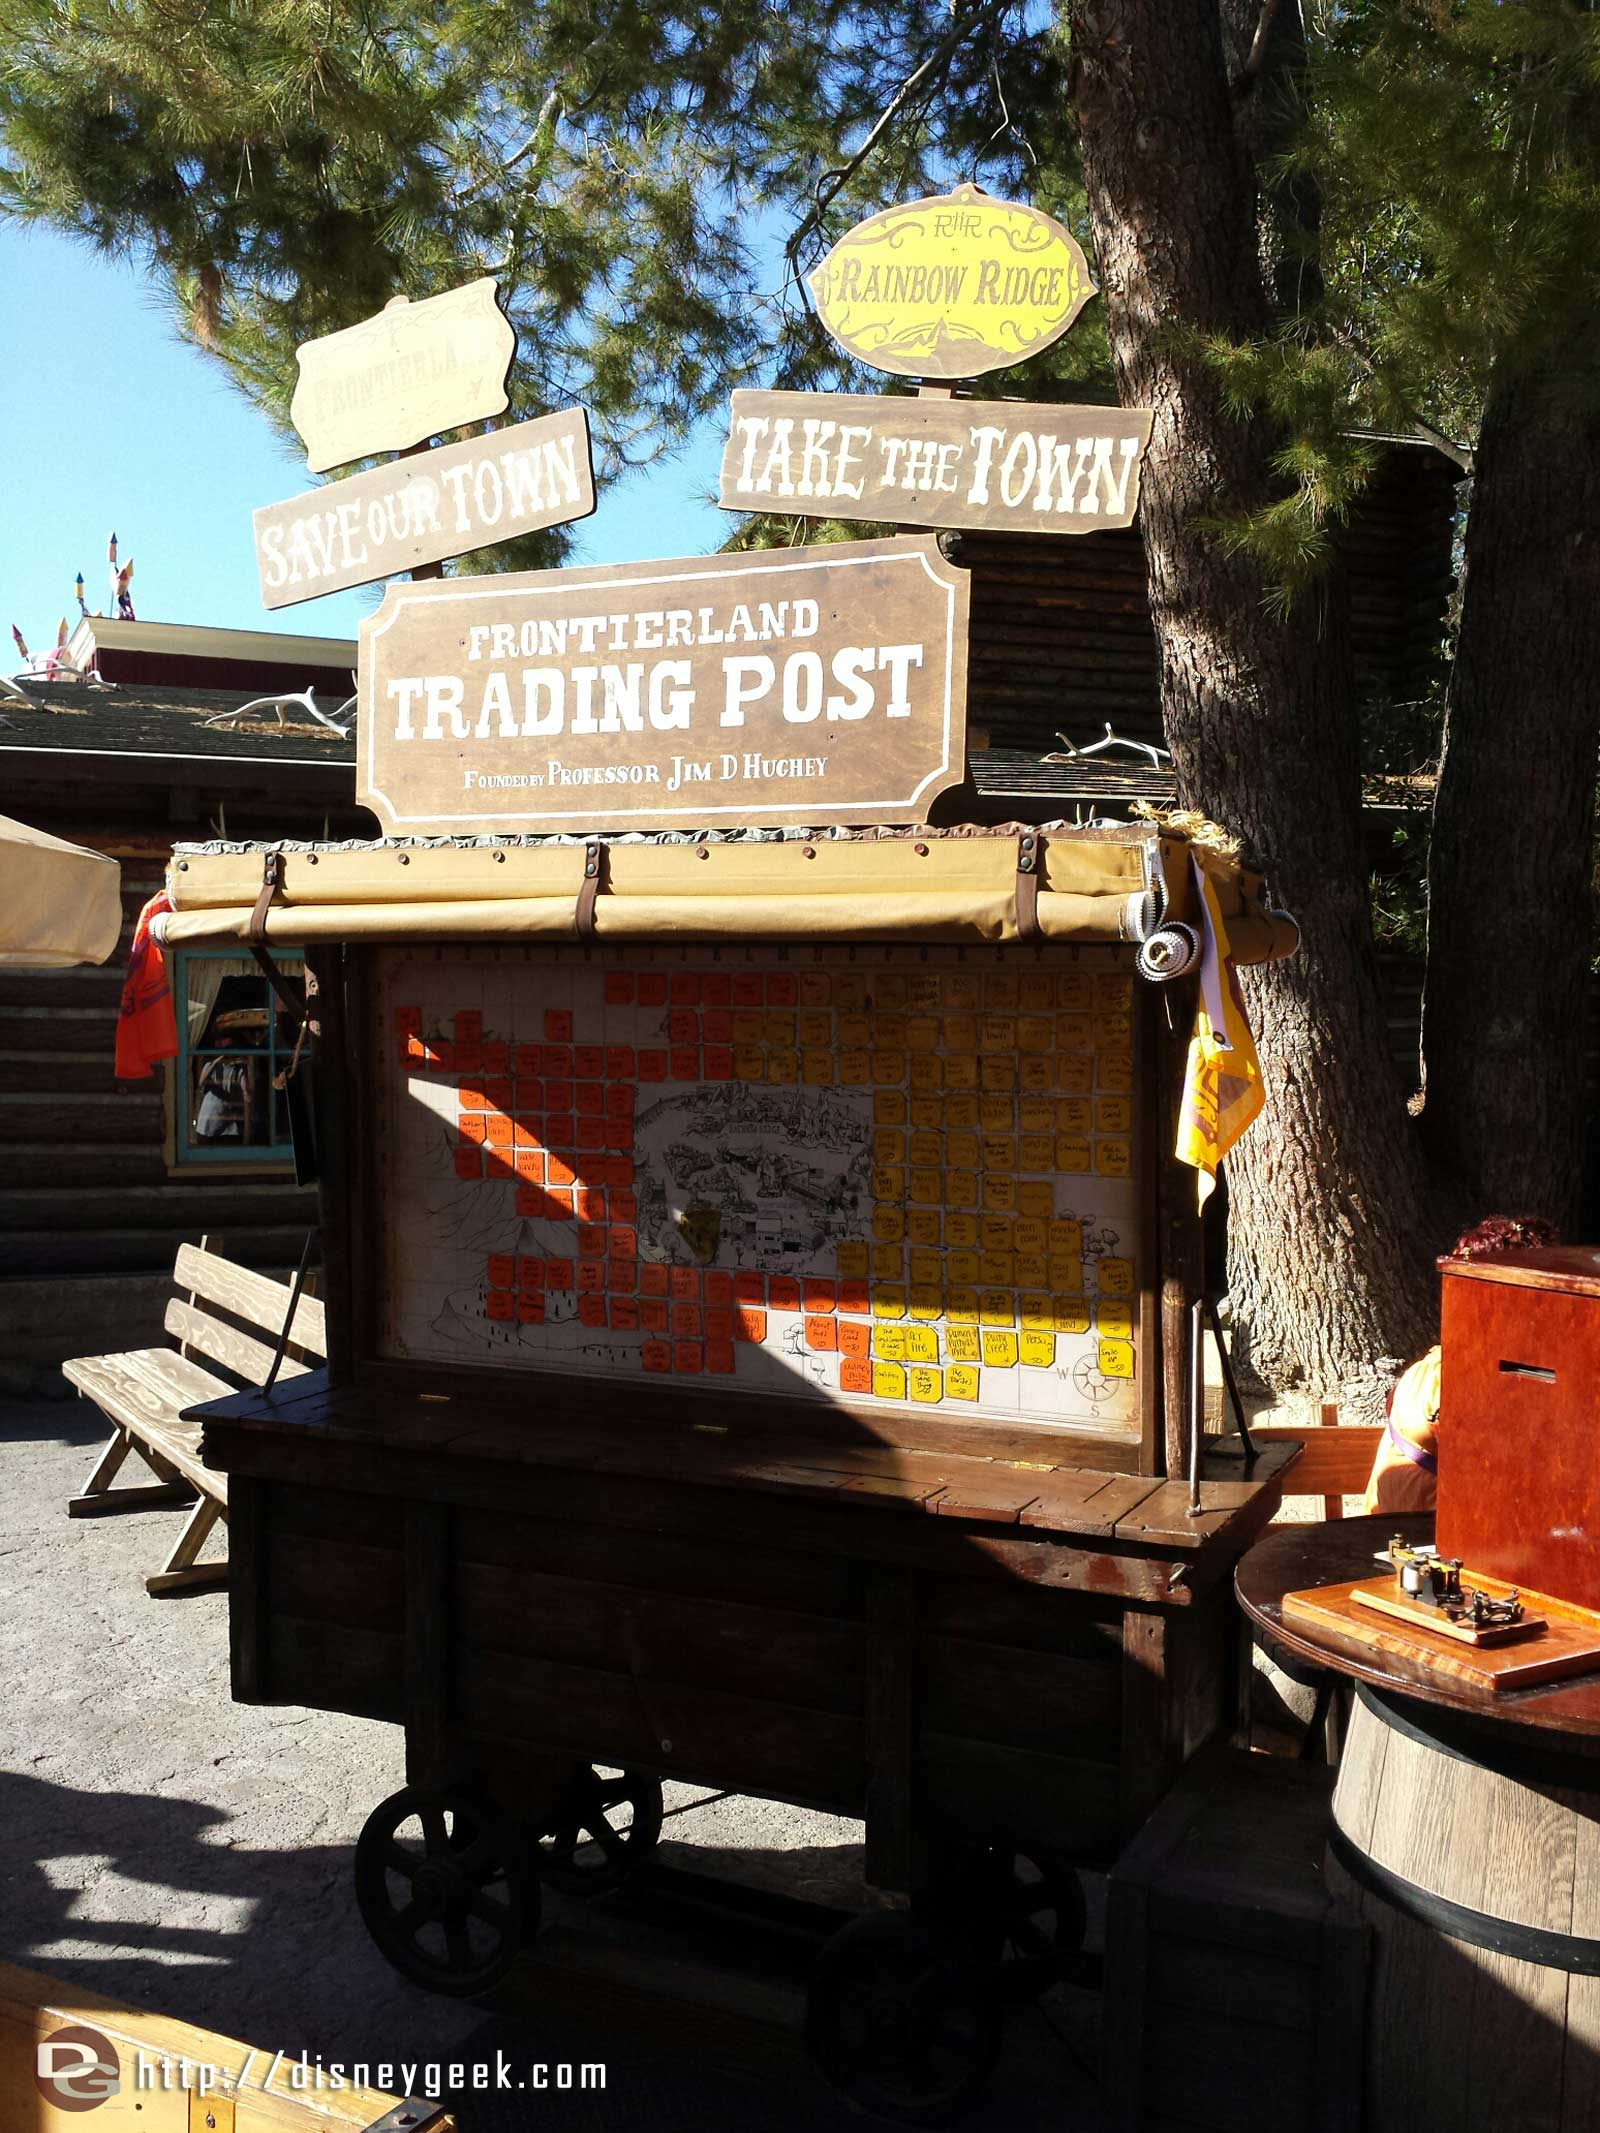 Tomorrow is the last day for Legends of Frontierland #Disneyland